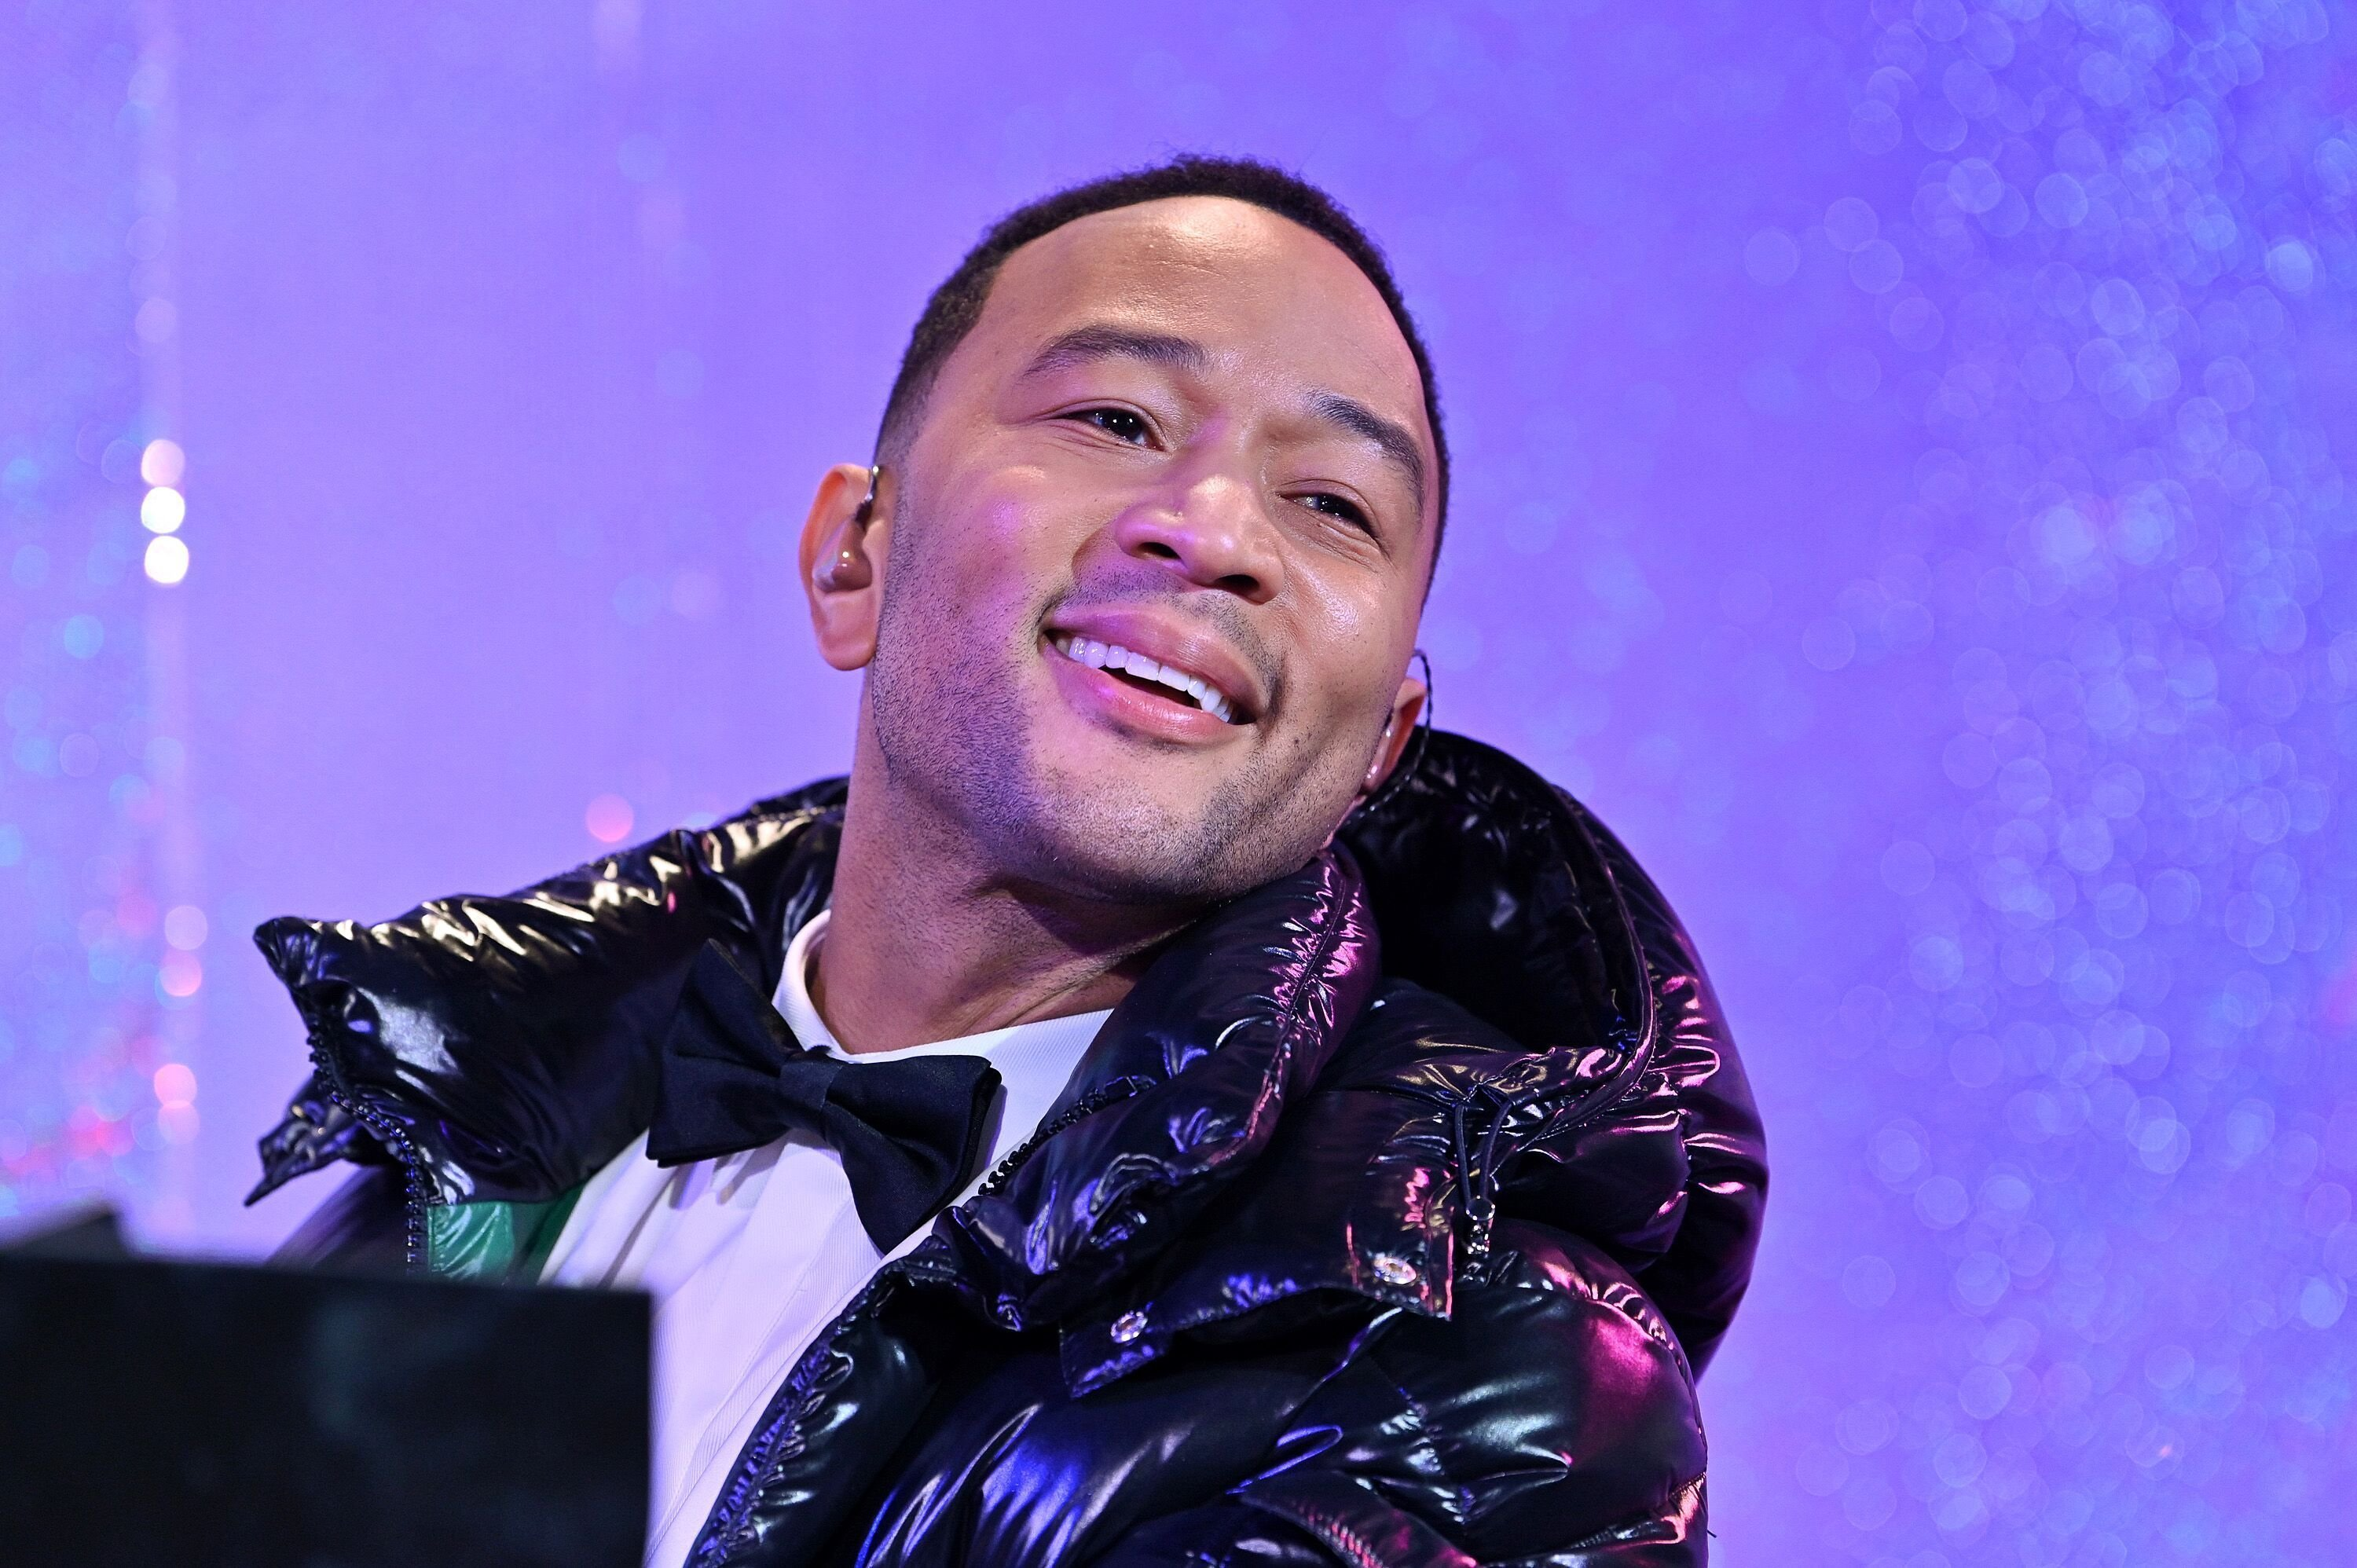 A portrait of John Legend performing onstage | Source: Getty Images/GlobalImagesUkraine